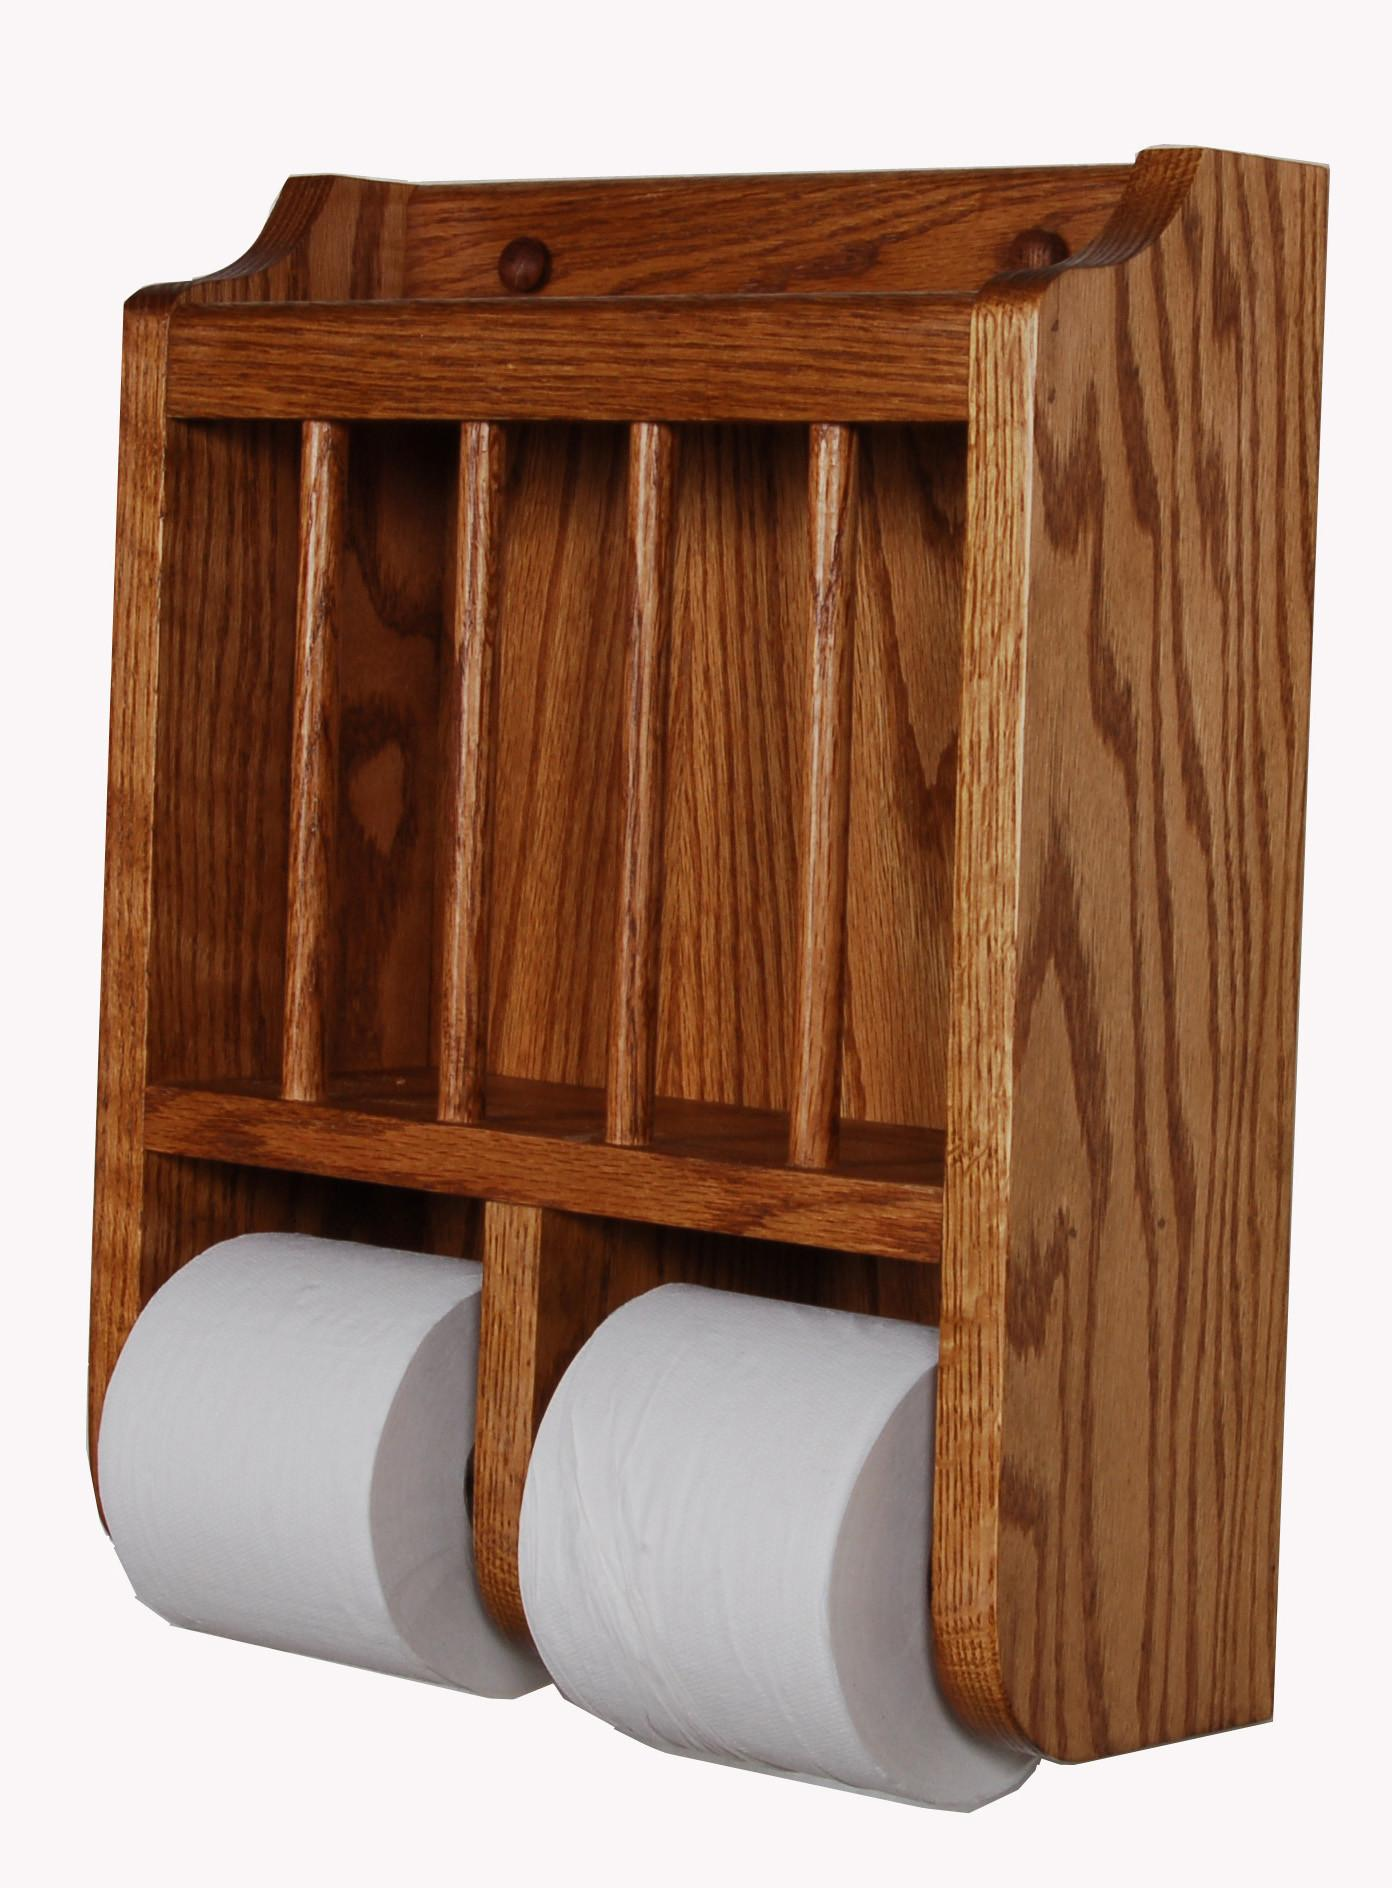 100 Wooden Toilet Paper Holder Red Wood